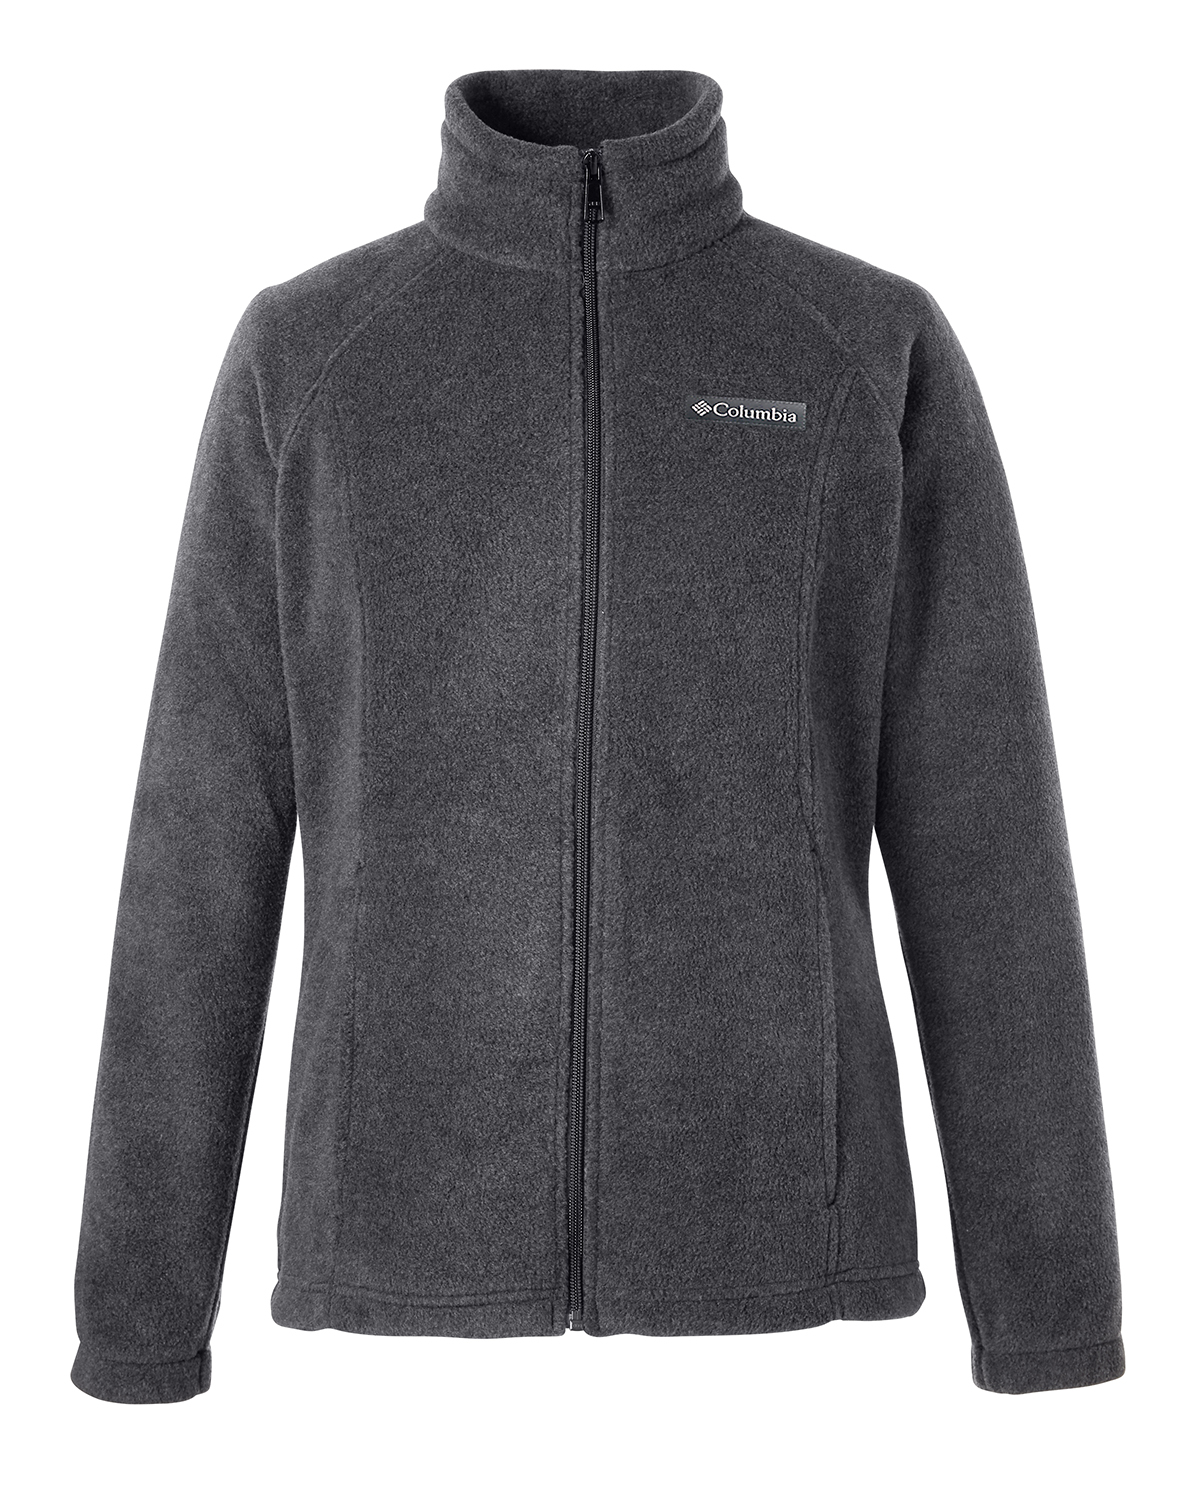 Picture of Columbia Ladies' Benton Springs Full-Zip Fleece